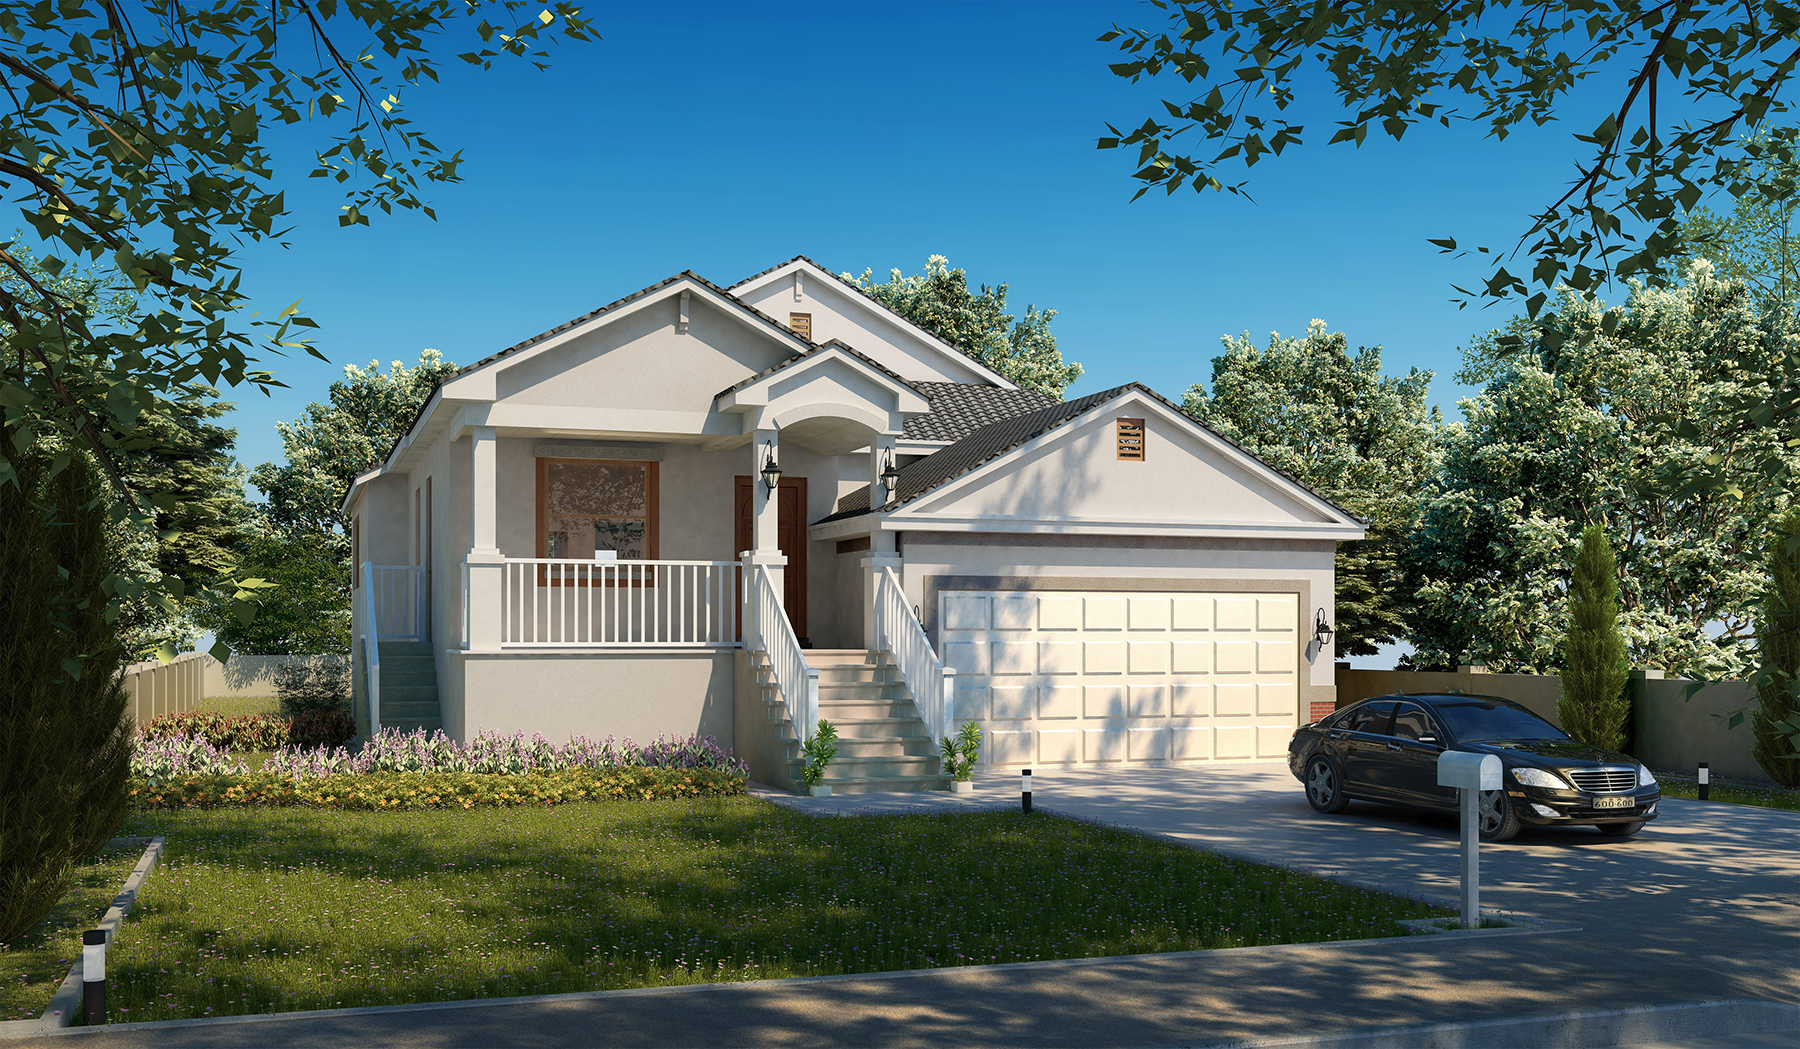 Single Family Home for Sale at NORTH ST PETERSBURG 6900 2nd St N St. Petersburg, Florida, 33702 United States